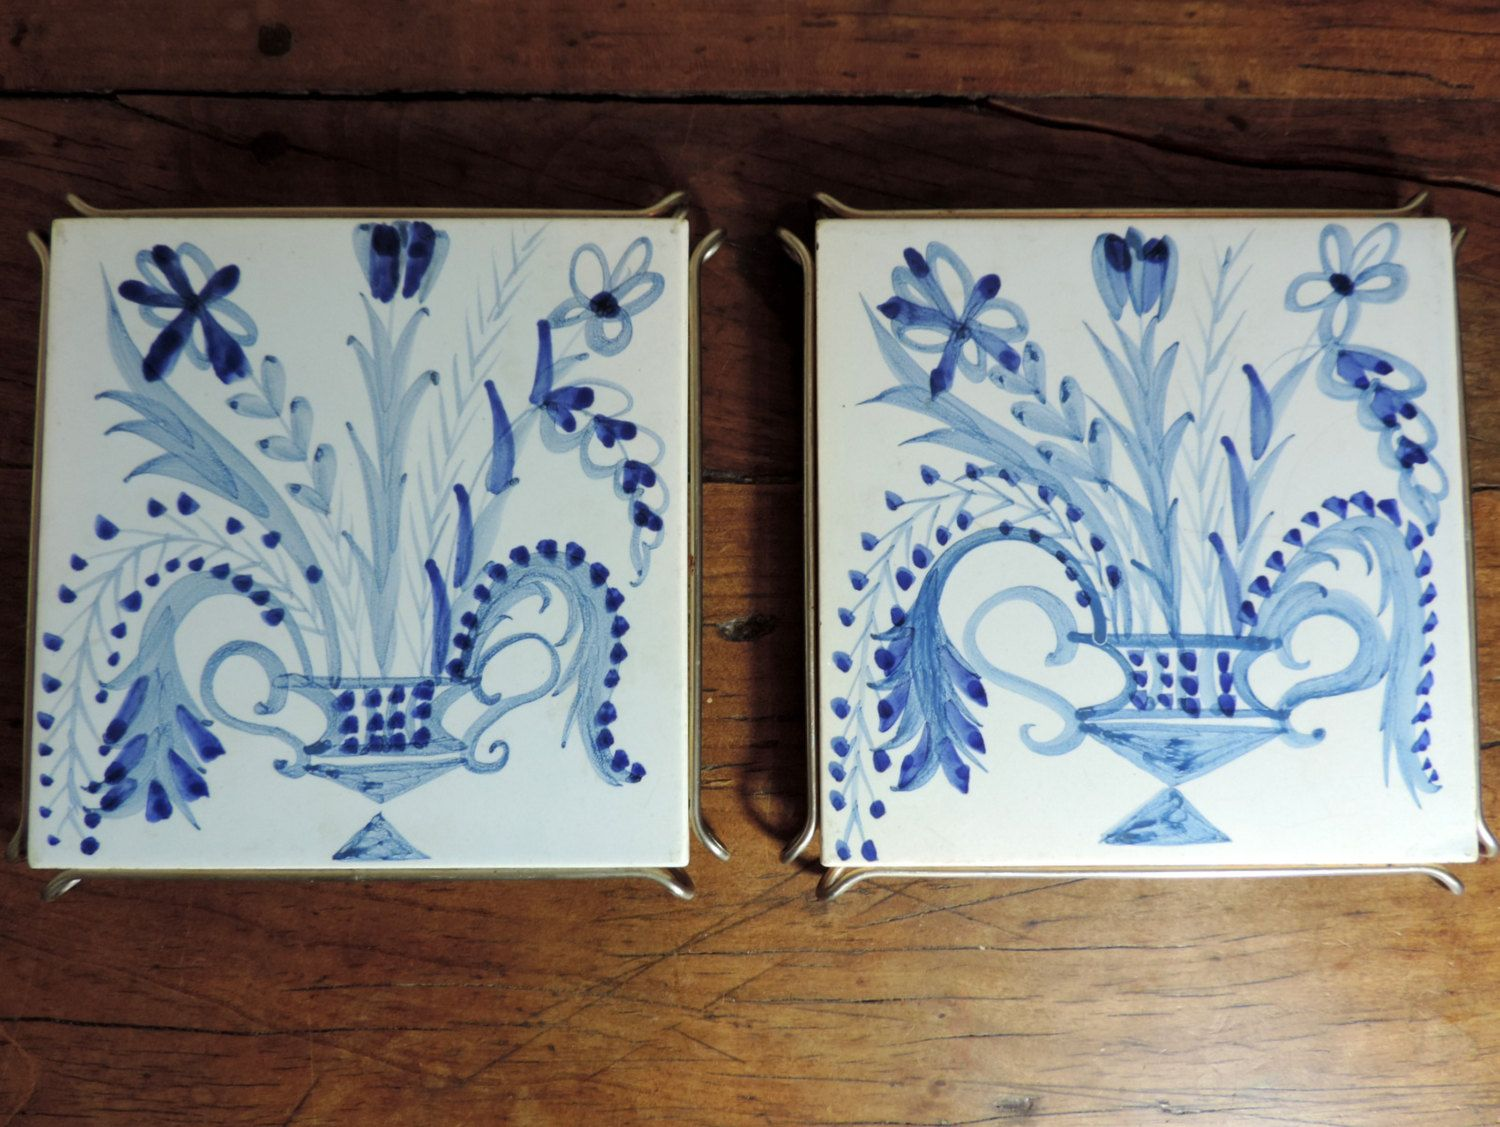 French vintage trivetsfrench vintage hand painted tile trivets french vintage trivetsfrench vintage hand painted tile trivetsvintage trivetfrench vintage ceramic tile trivets set of 2pair of trivets dailygadgetfo Choice Image